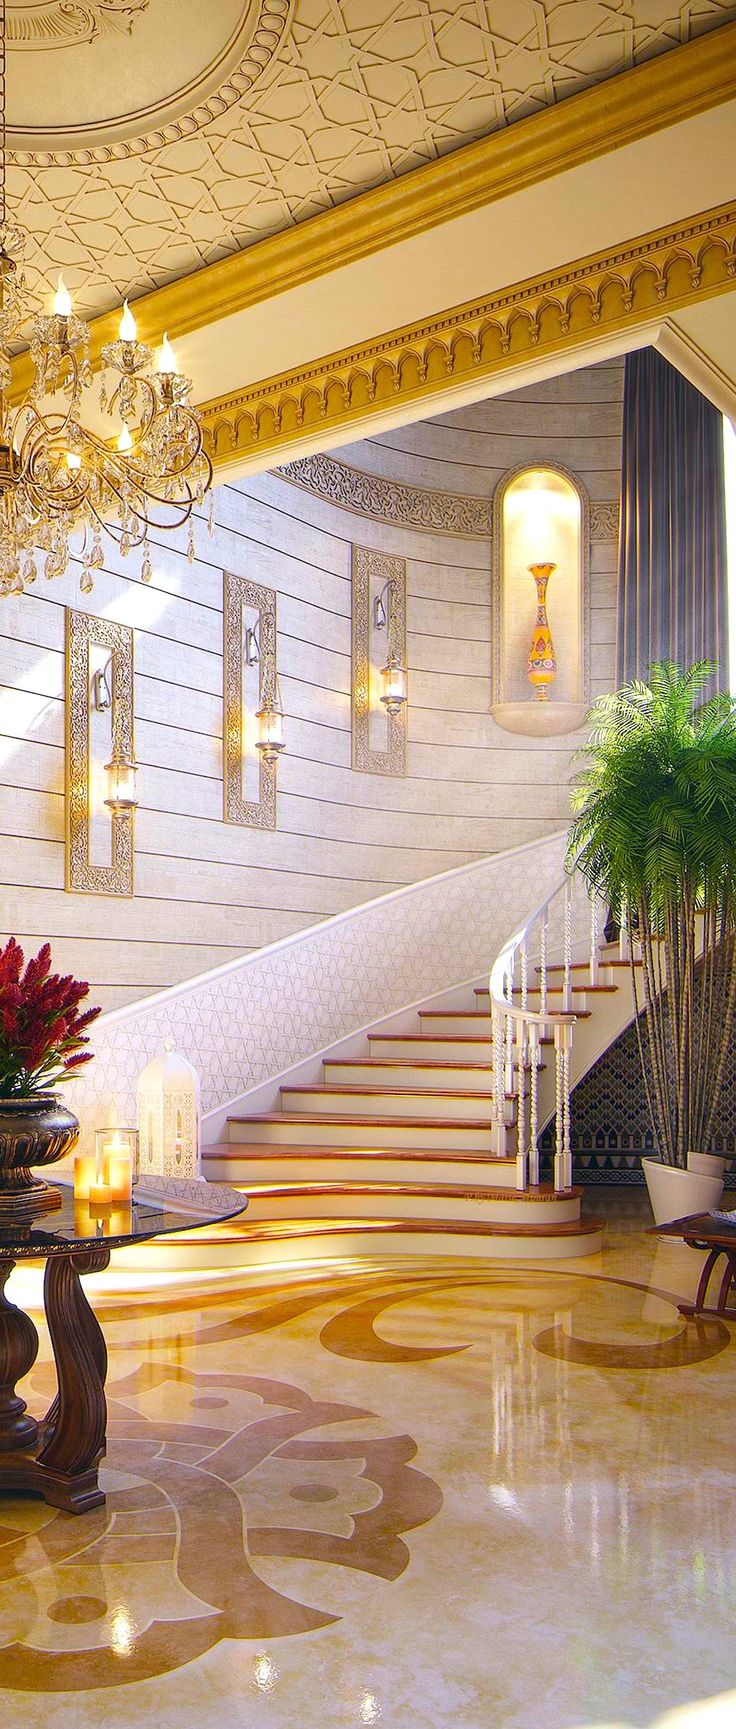 Best Images About Luxury Homes On Pinterest Entrance Living - Gorgeous homes interior design